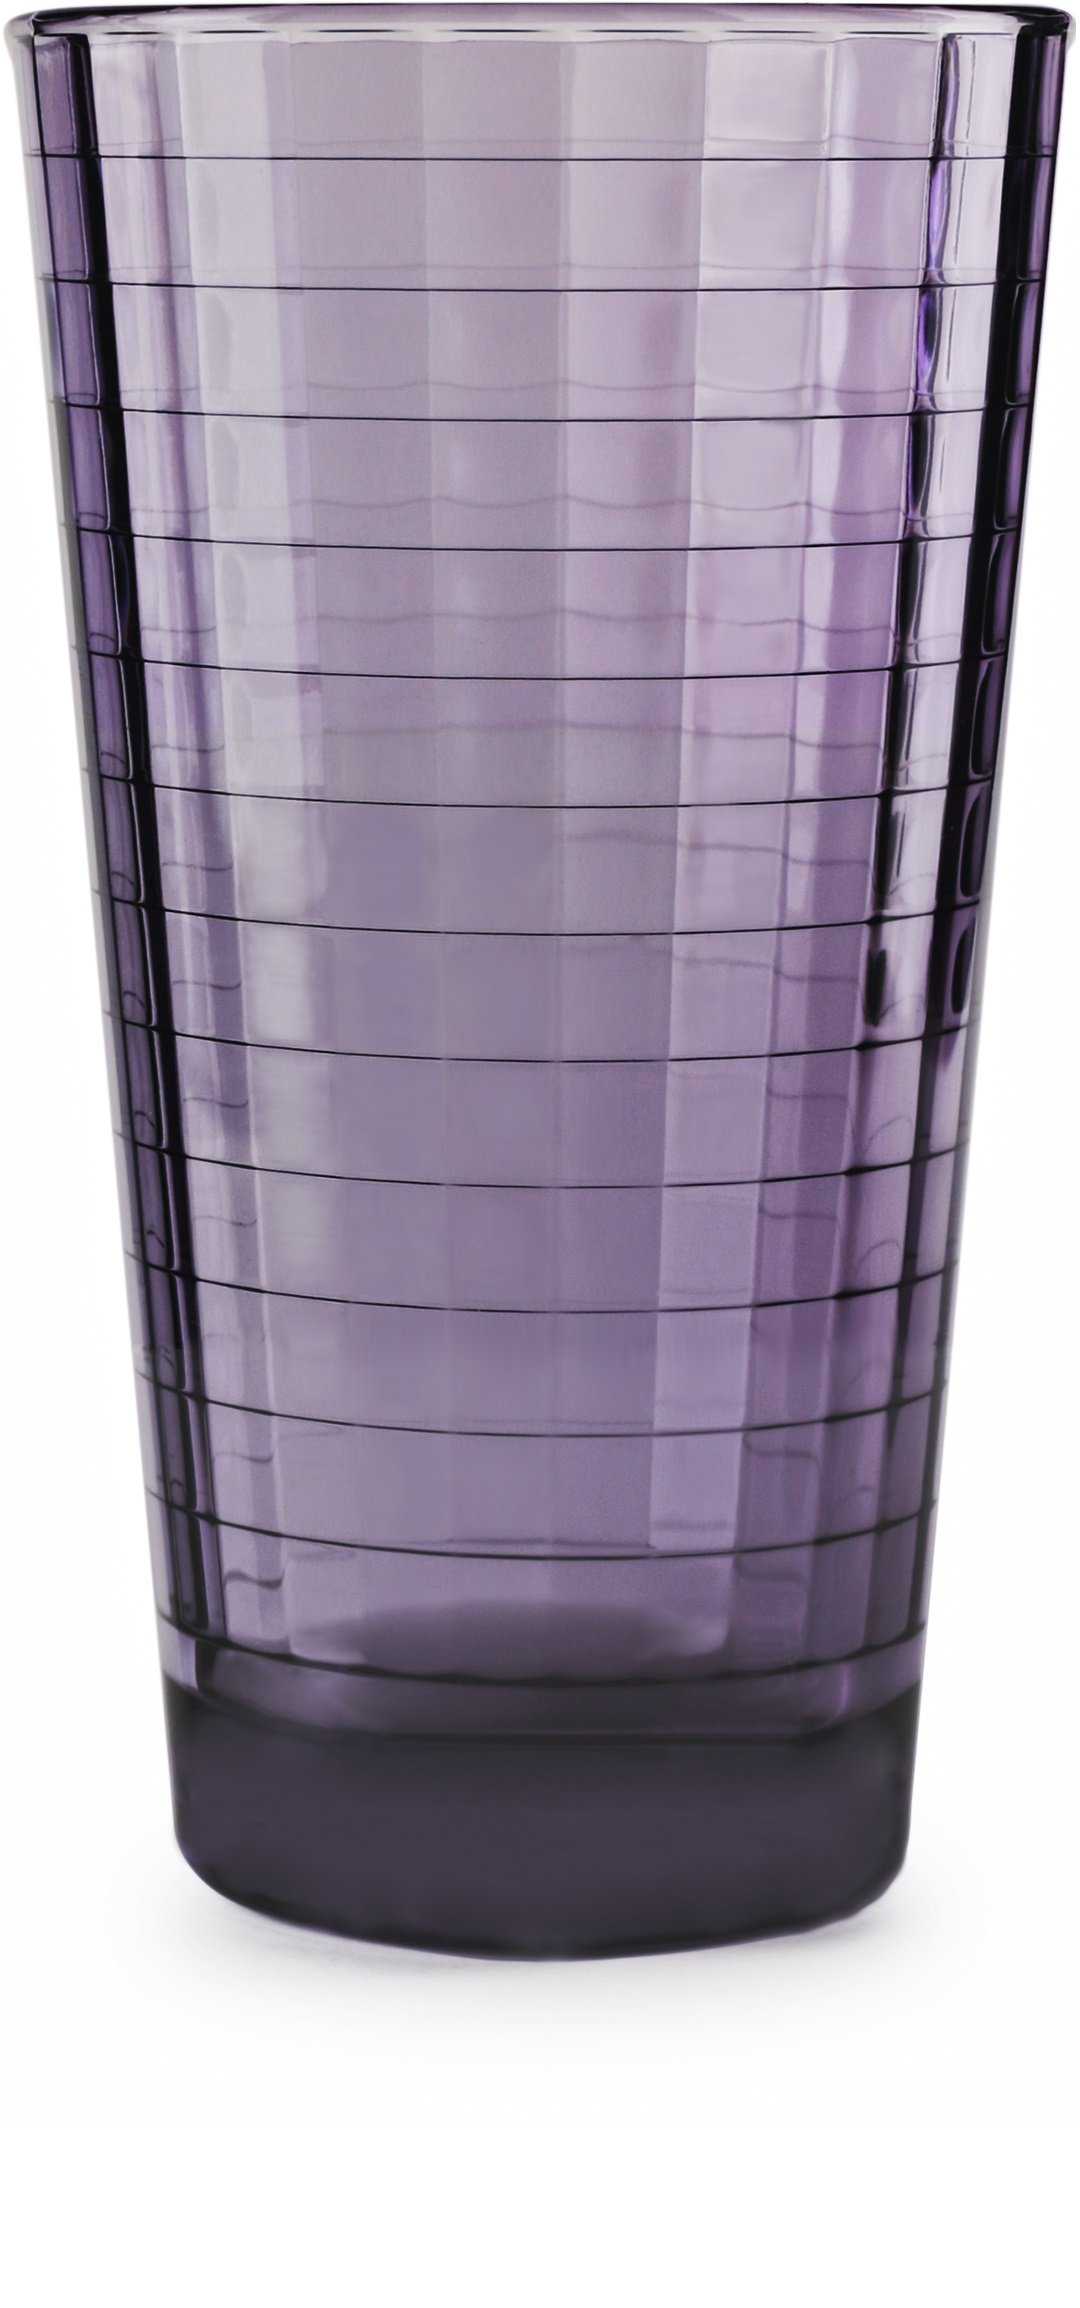 Circleware 44822 Windowpane Heavy Base Juice Drinking Glasses Kitchen Entertainment Ice Tea Beverage Cups Glassware for Water, Milk, Beer, Whiskey and Bar Decor Gift, 17 oz. set of 4, Plum